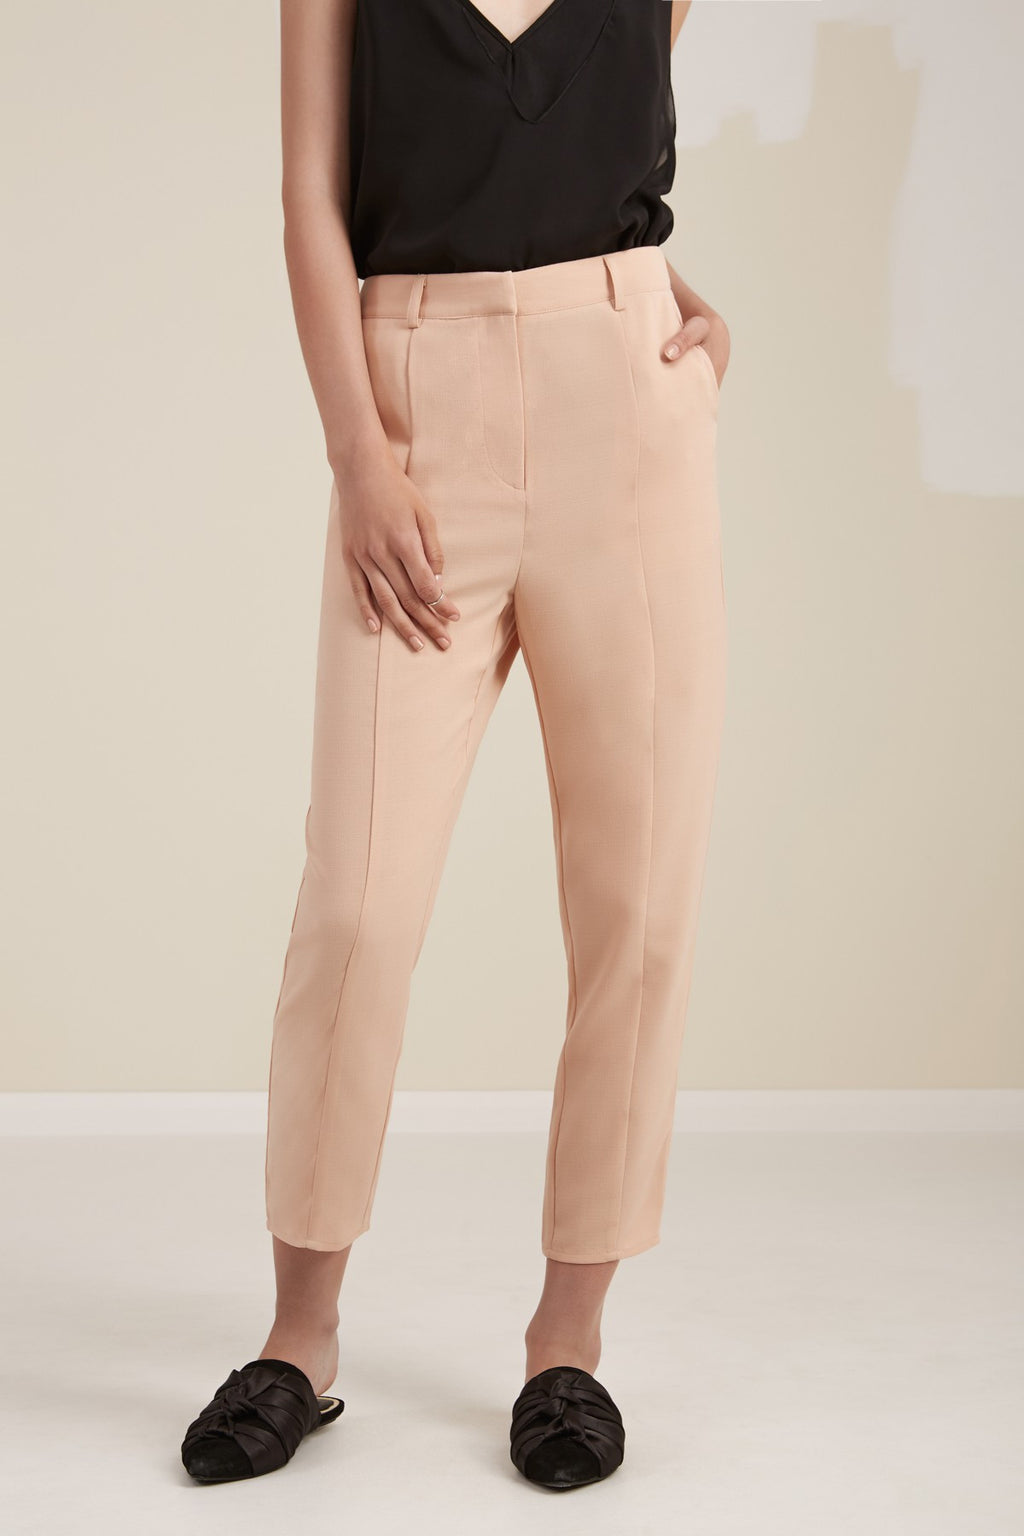 Dream Maker Pant - Sallyrose